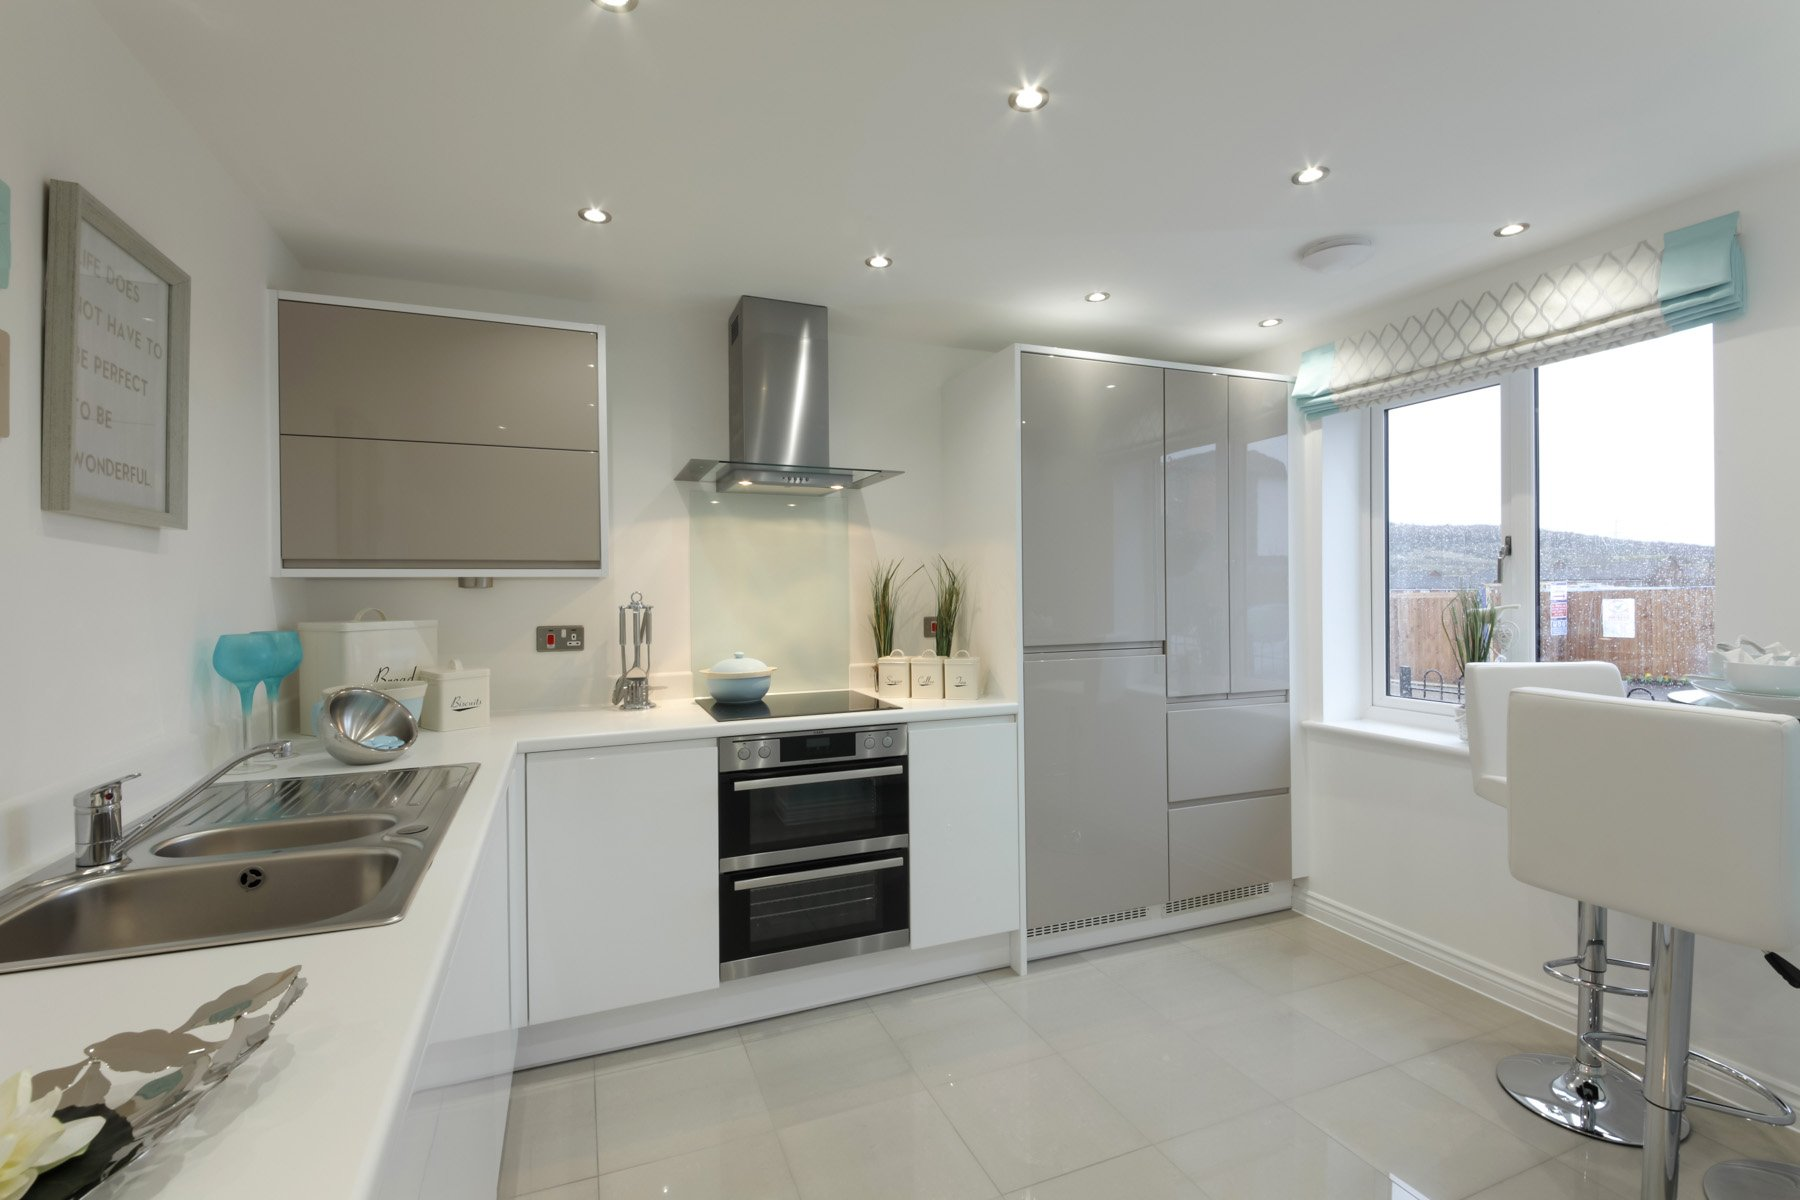 TW Exeter - Cranbrook - Danbury example kitchen